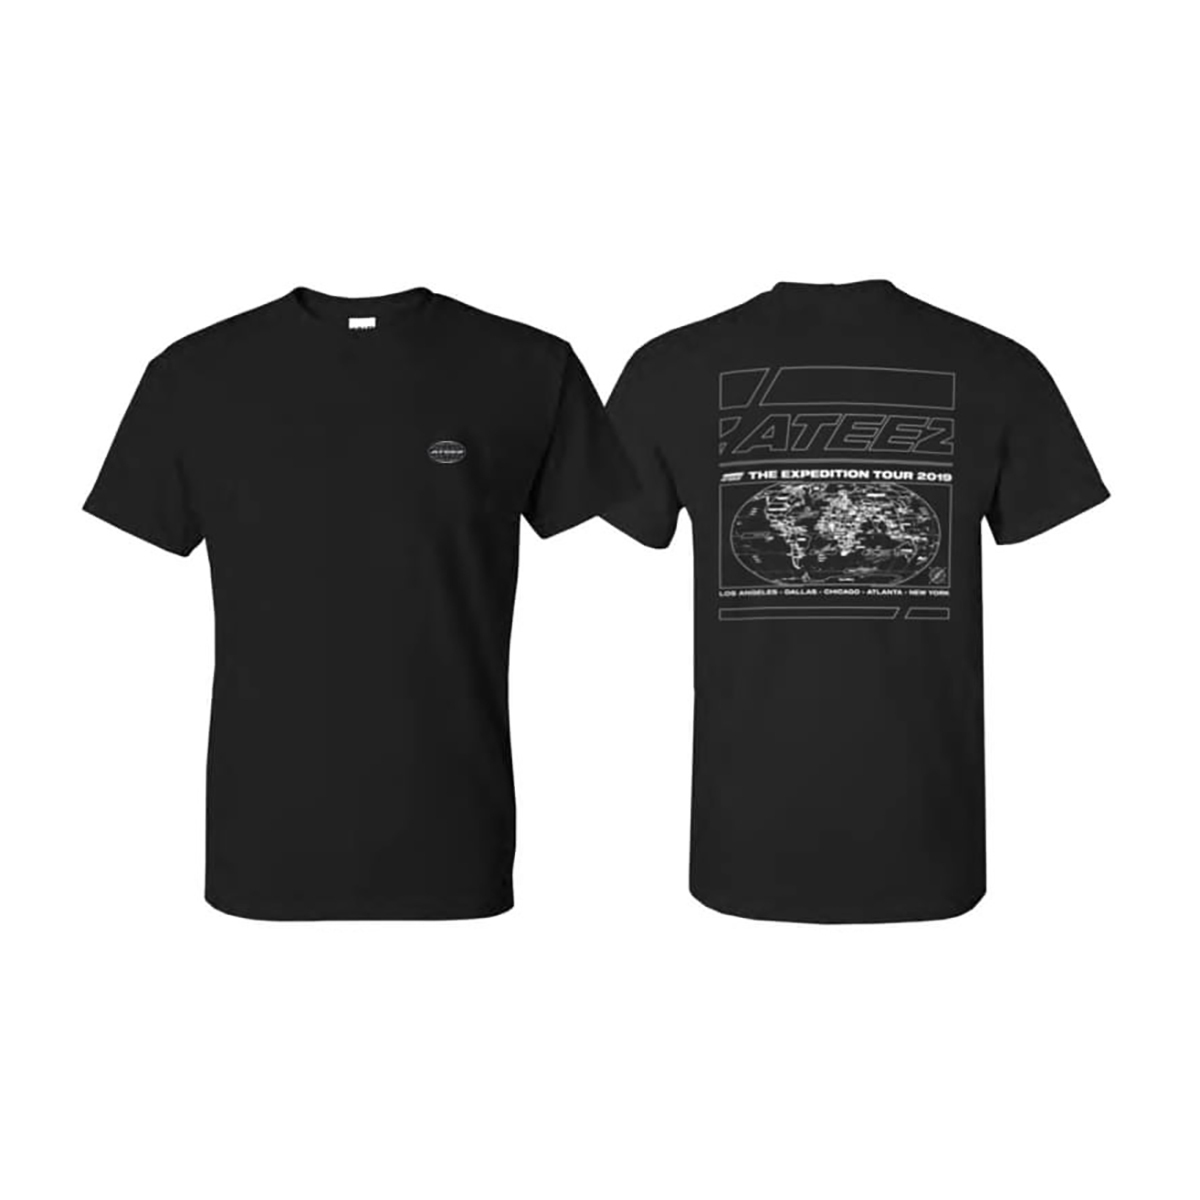 Black 'The Expedition Tour' Tshirt - With Cities